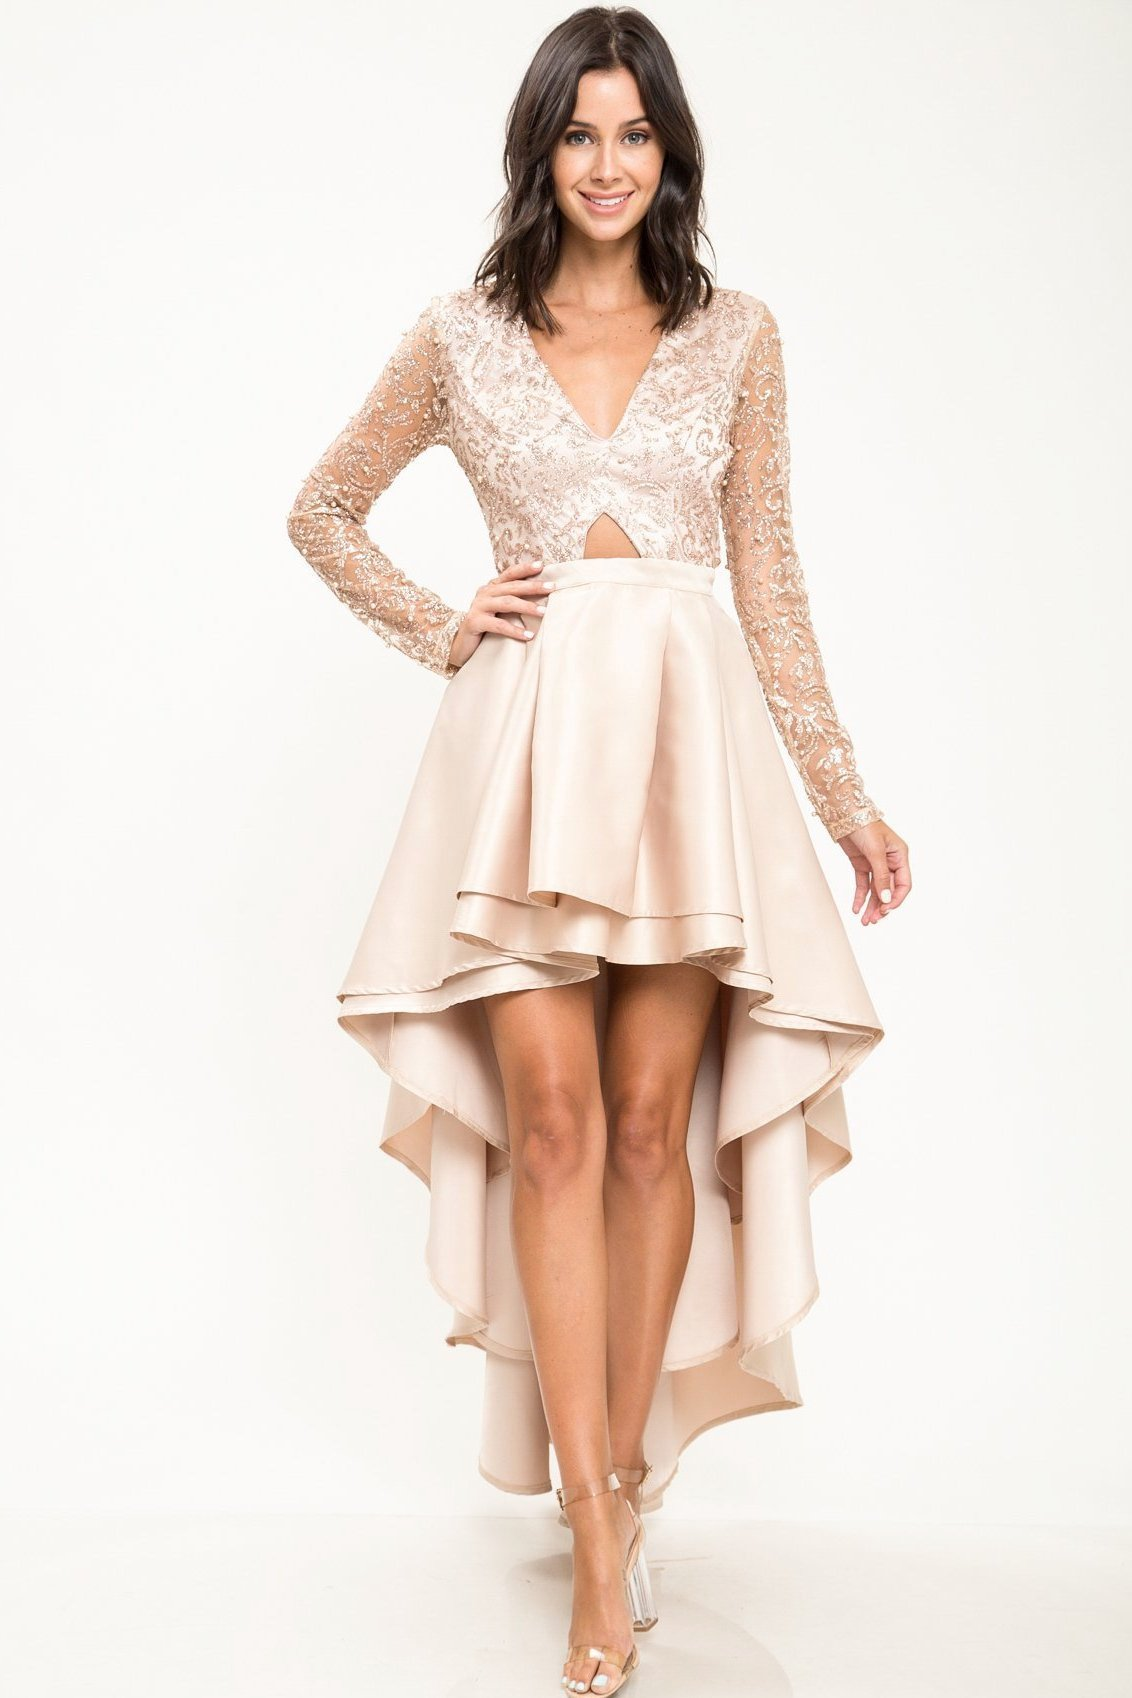 Leah Pearl Glitter High-Low Dress - Geegeebae